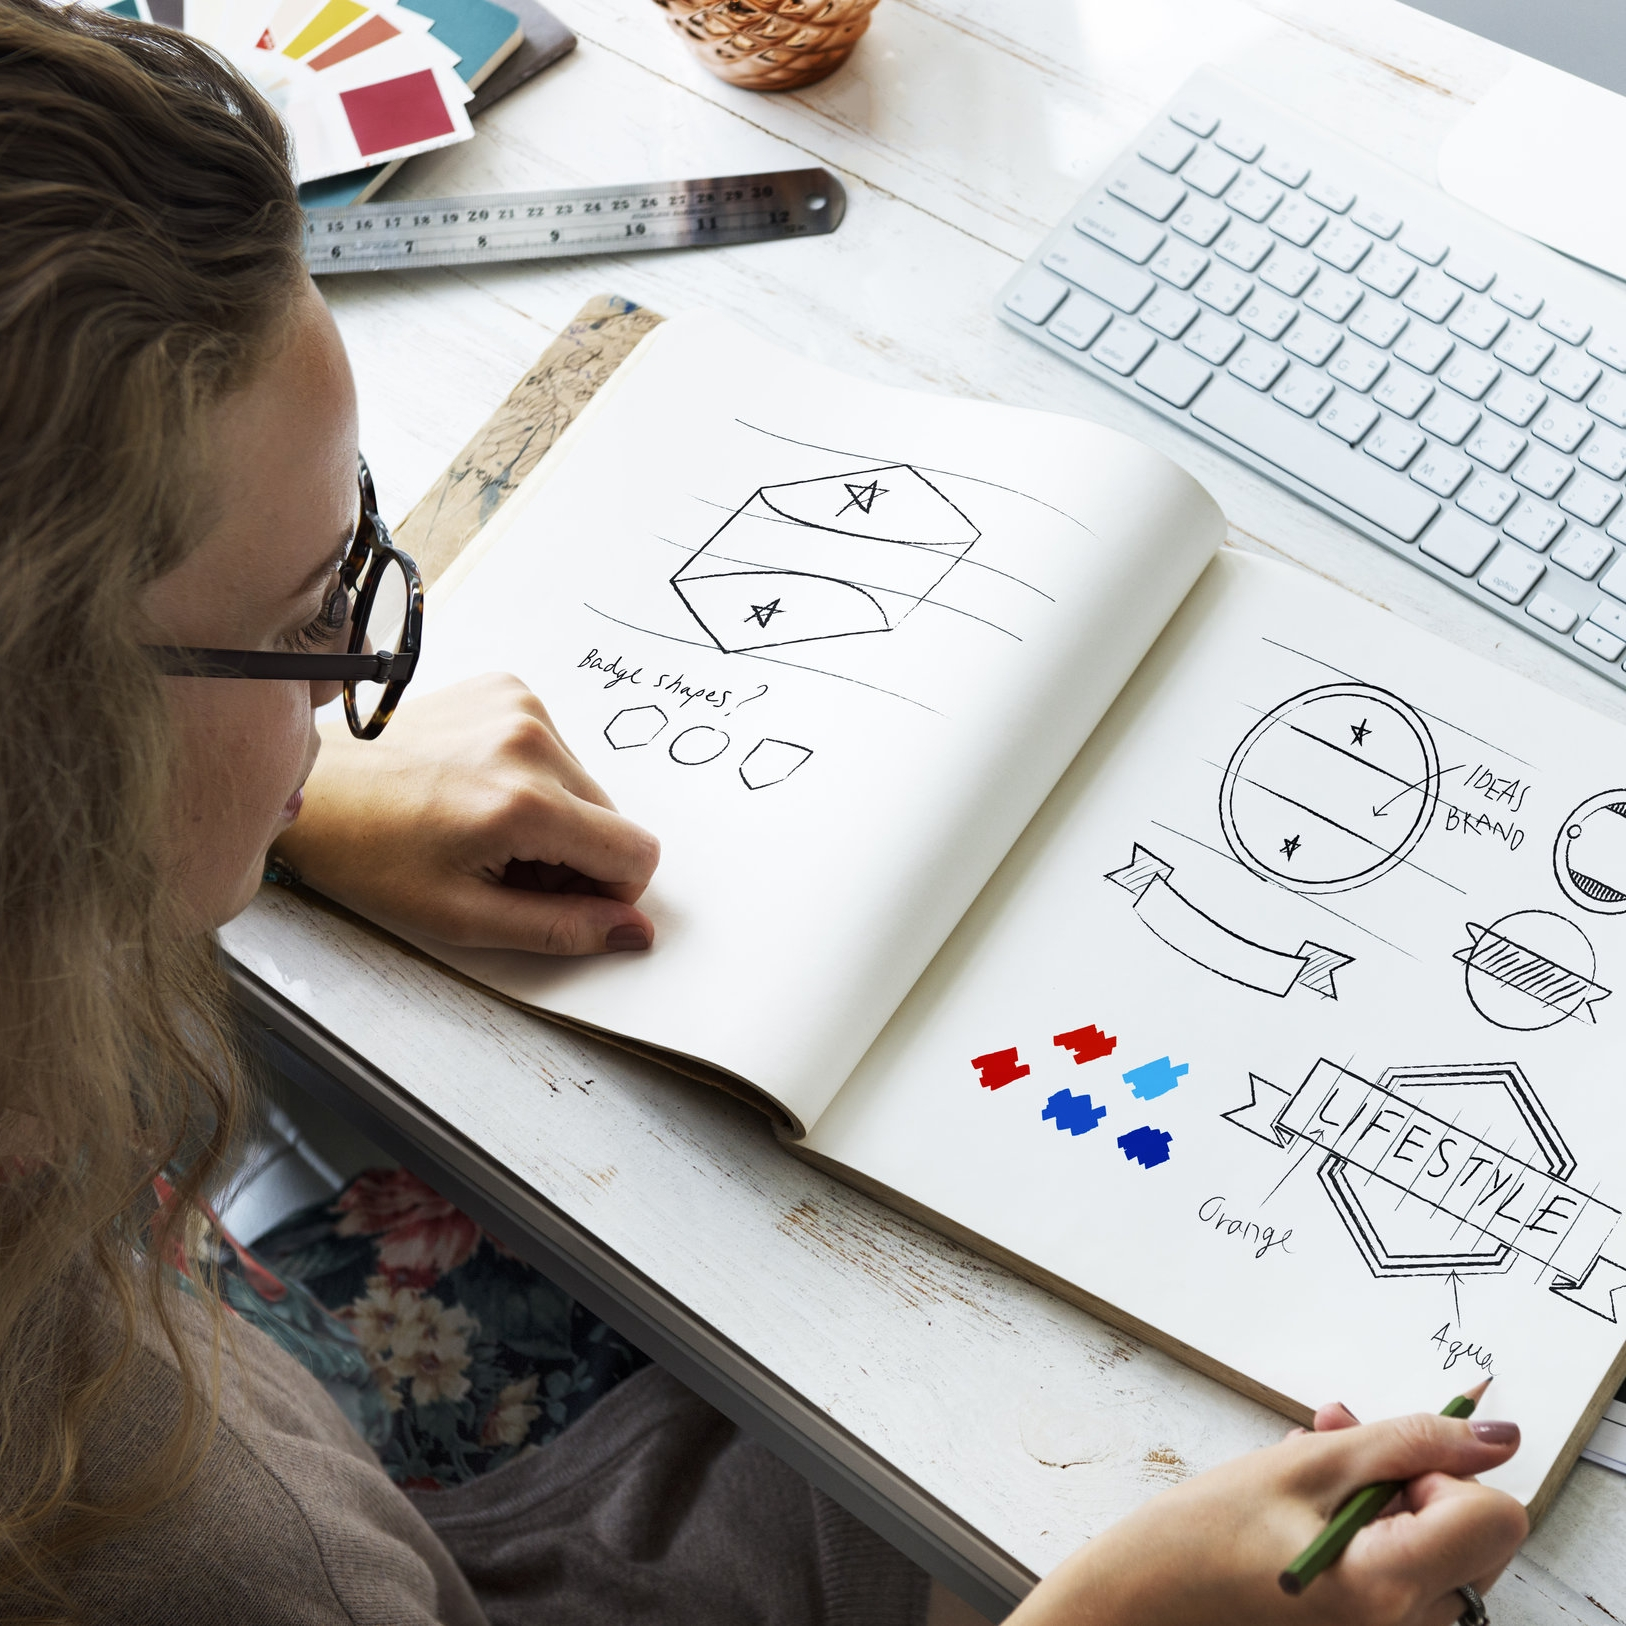 VISUAL IDENTITY - Your brand is the soul of your company. Every visual representation of your brand - the name, the logo, the symbols, the fonts - convey meaning and create an emotional link between you and your customers.